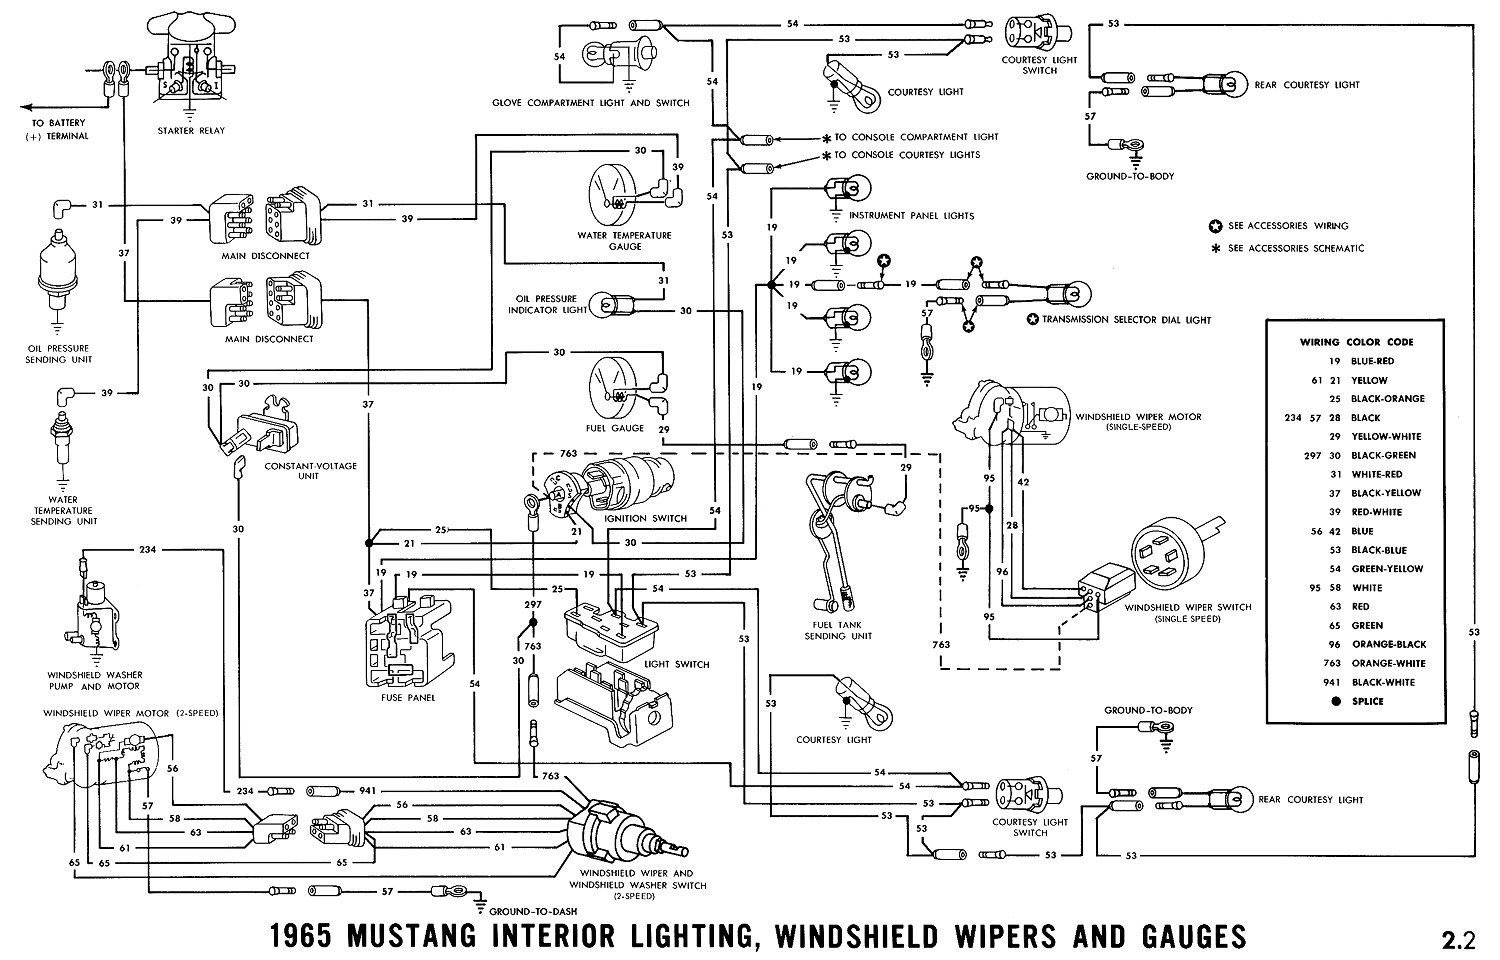 1965g 1965 mustang wiring diagrams average joe restoration 1965 mustang wiring diagram pdf at edmiracle.co